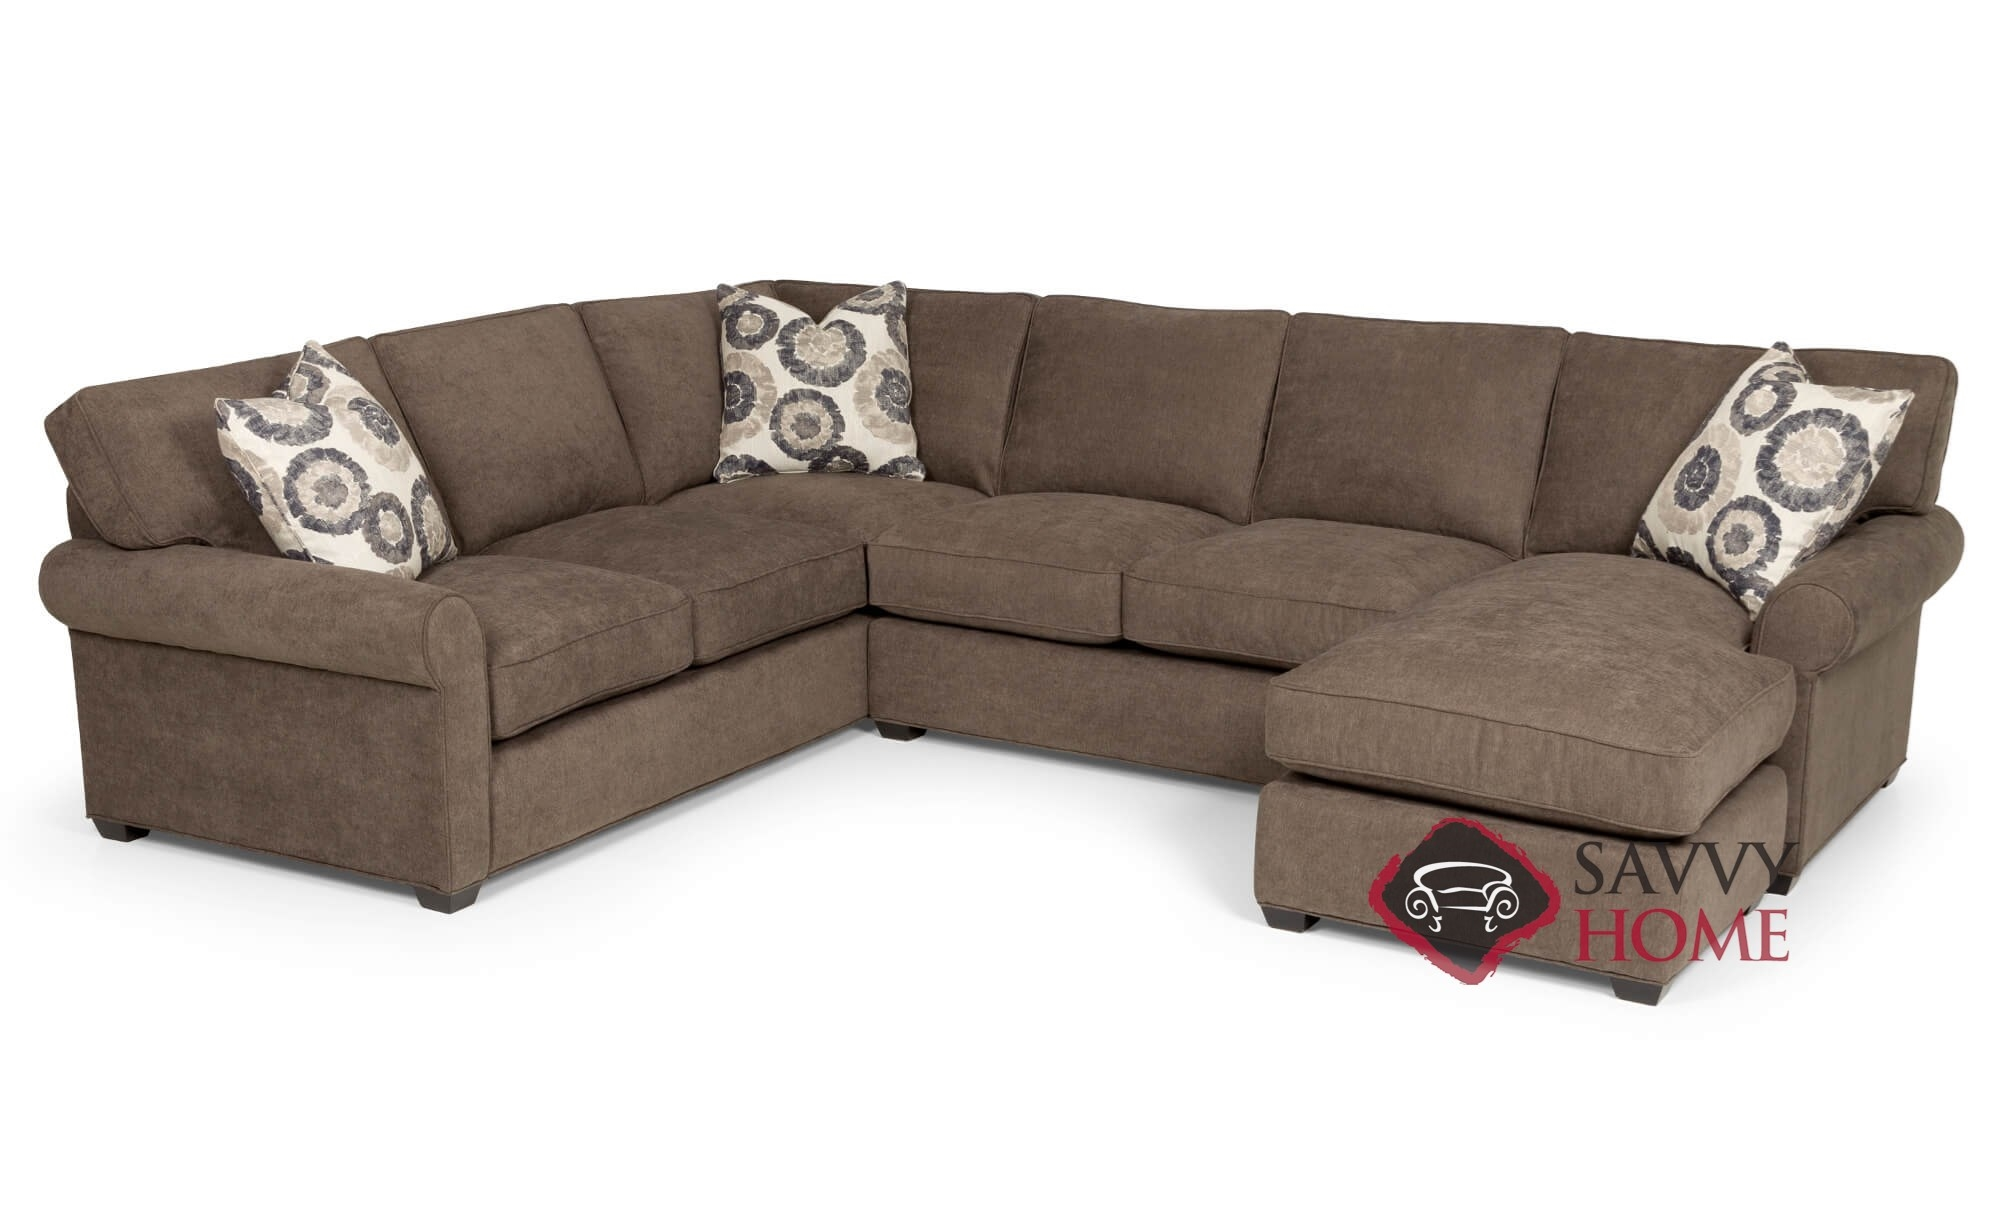 Fabulous The 225 U Shape True Sectional Sofa By Stanton With Down Blend Cushions Caraccident5 Cool Chair Designs And Ideas Caraccident5Info